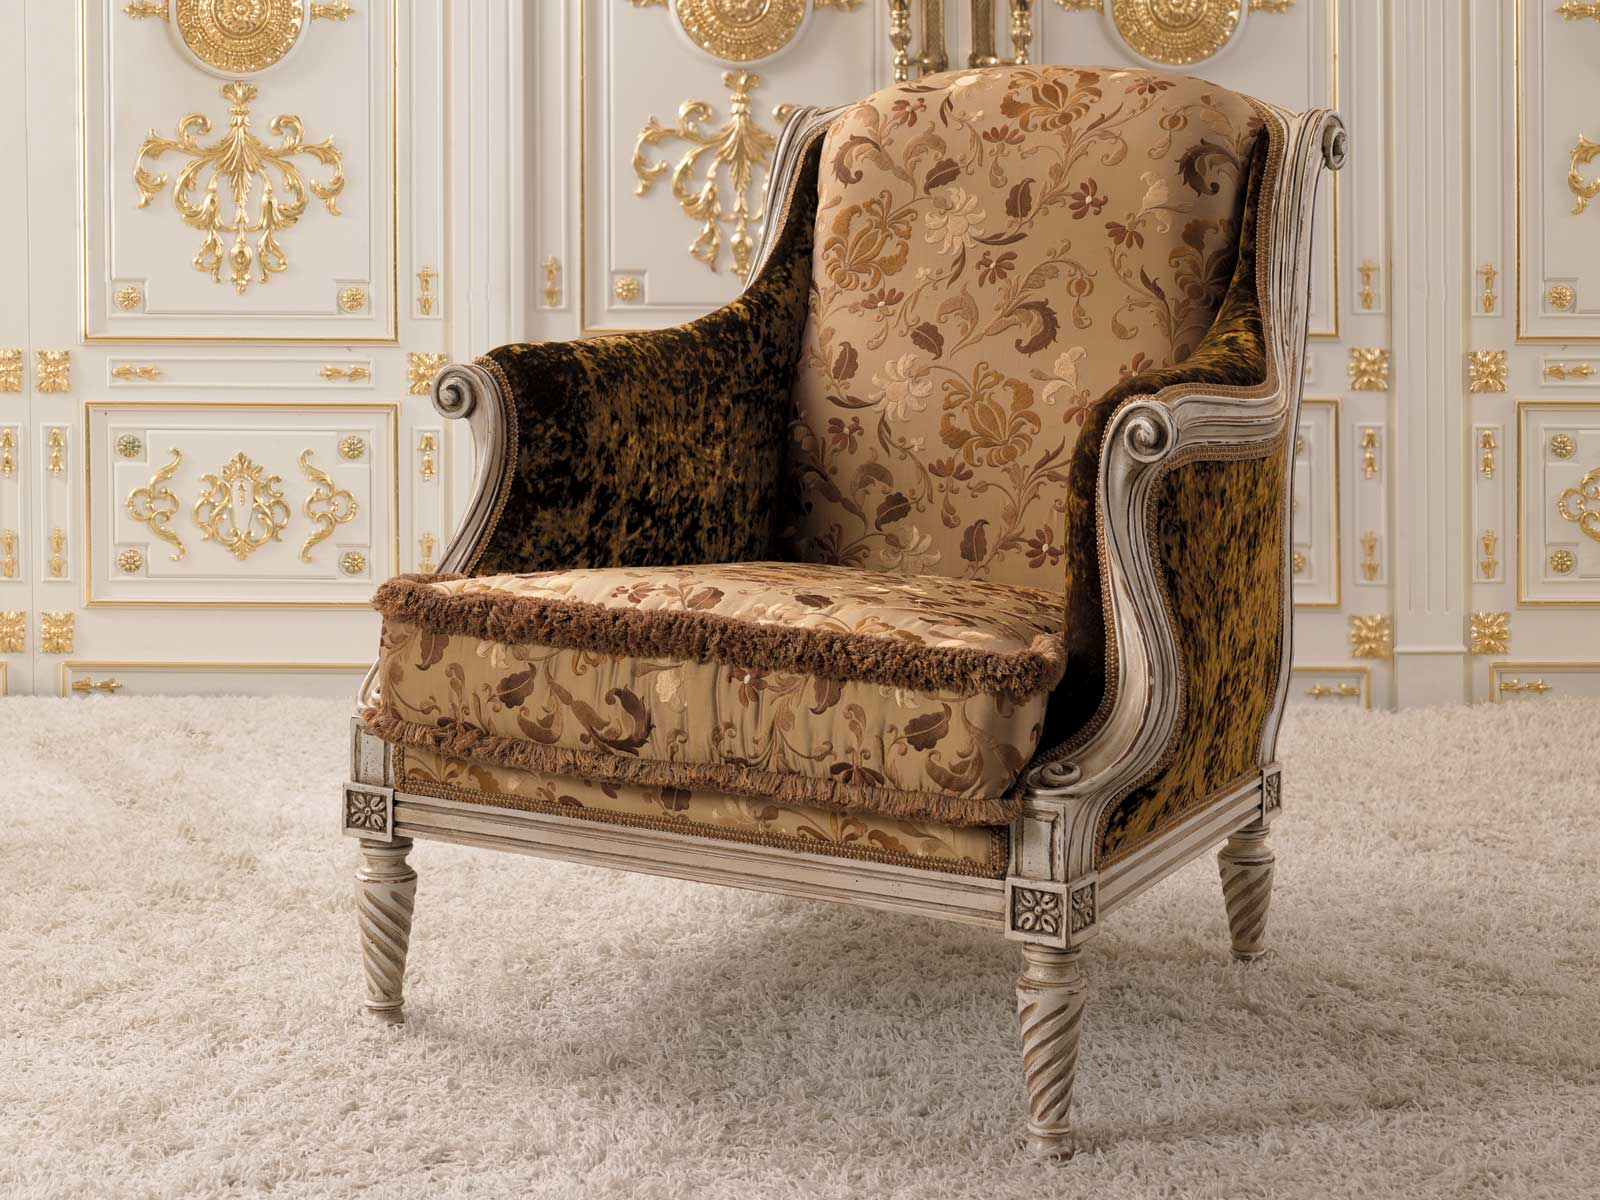 Designer Sofas Usa Art Deco And Period-style Deluxe And Classic Furniture - Tst